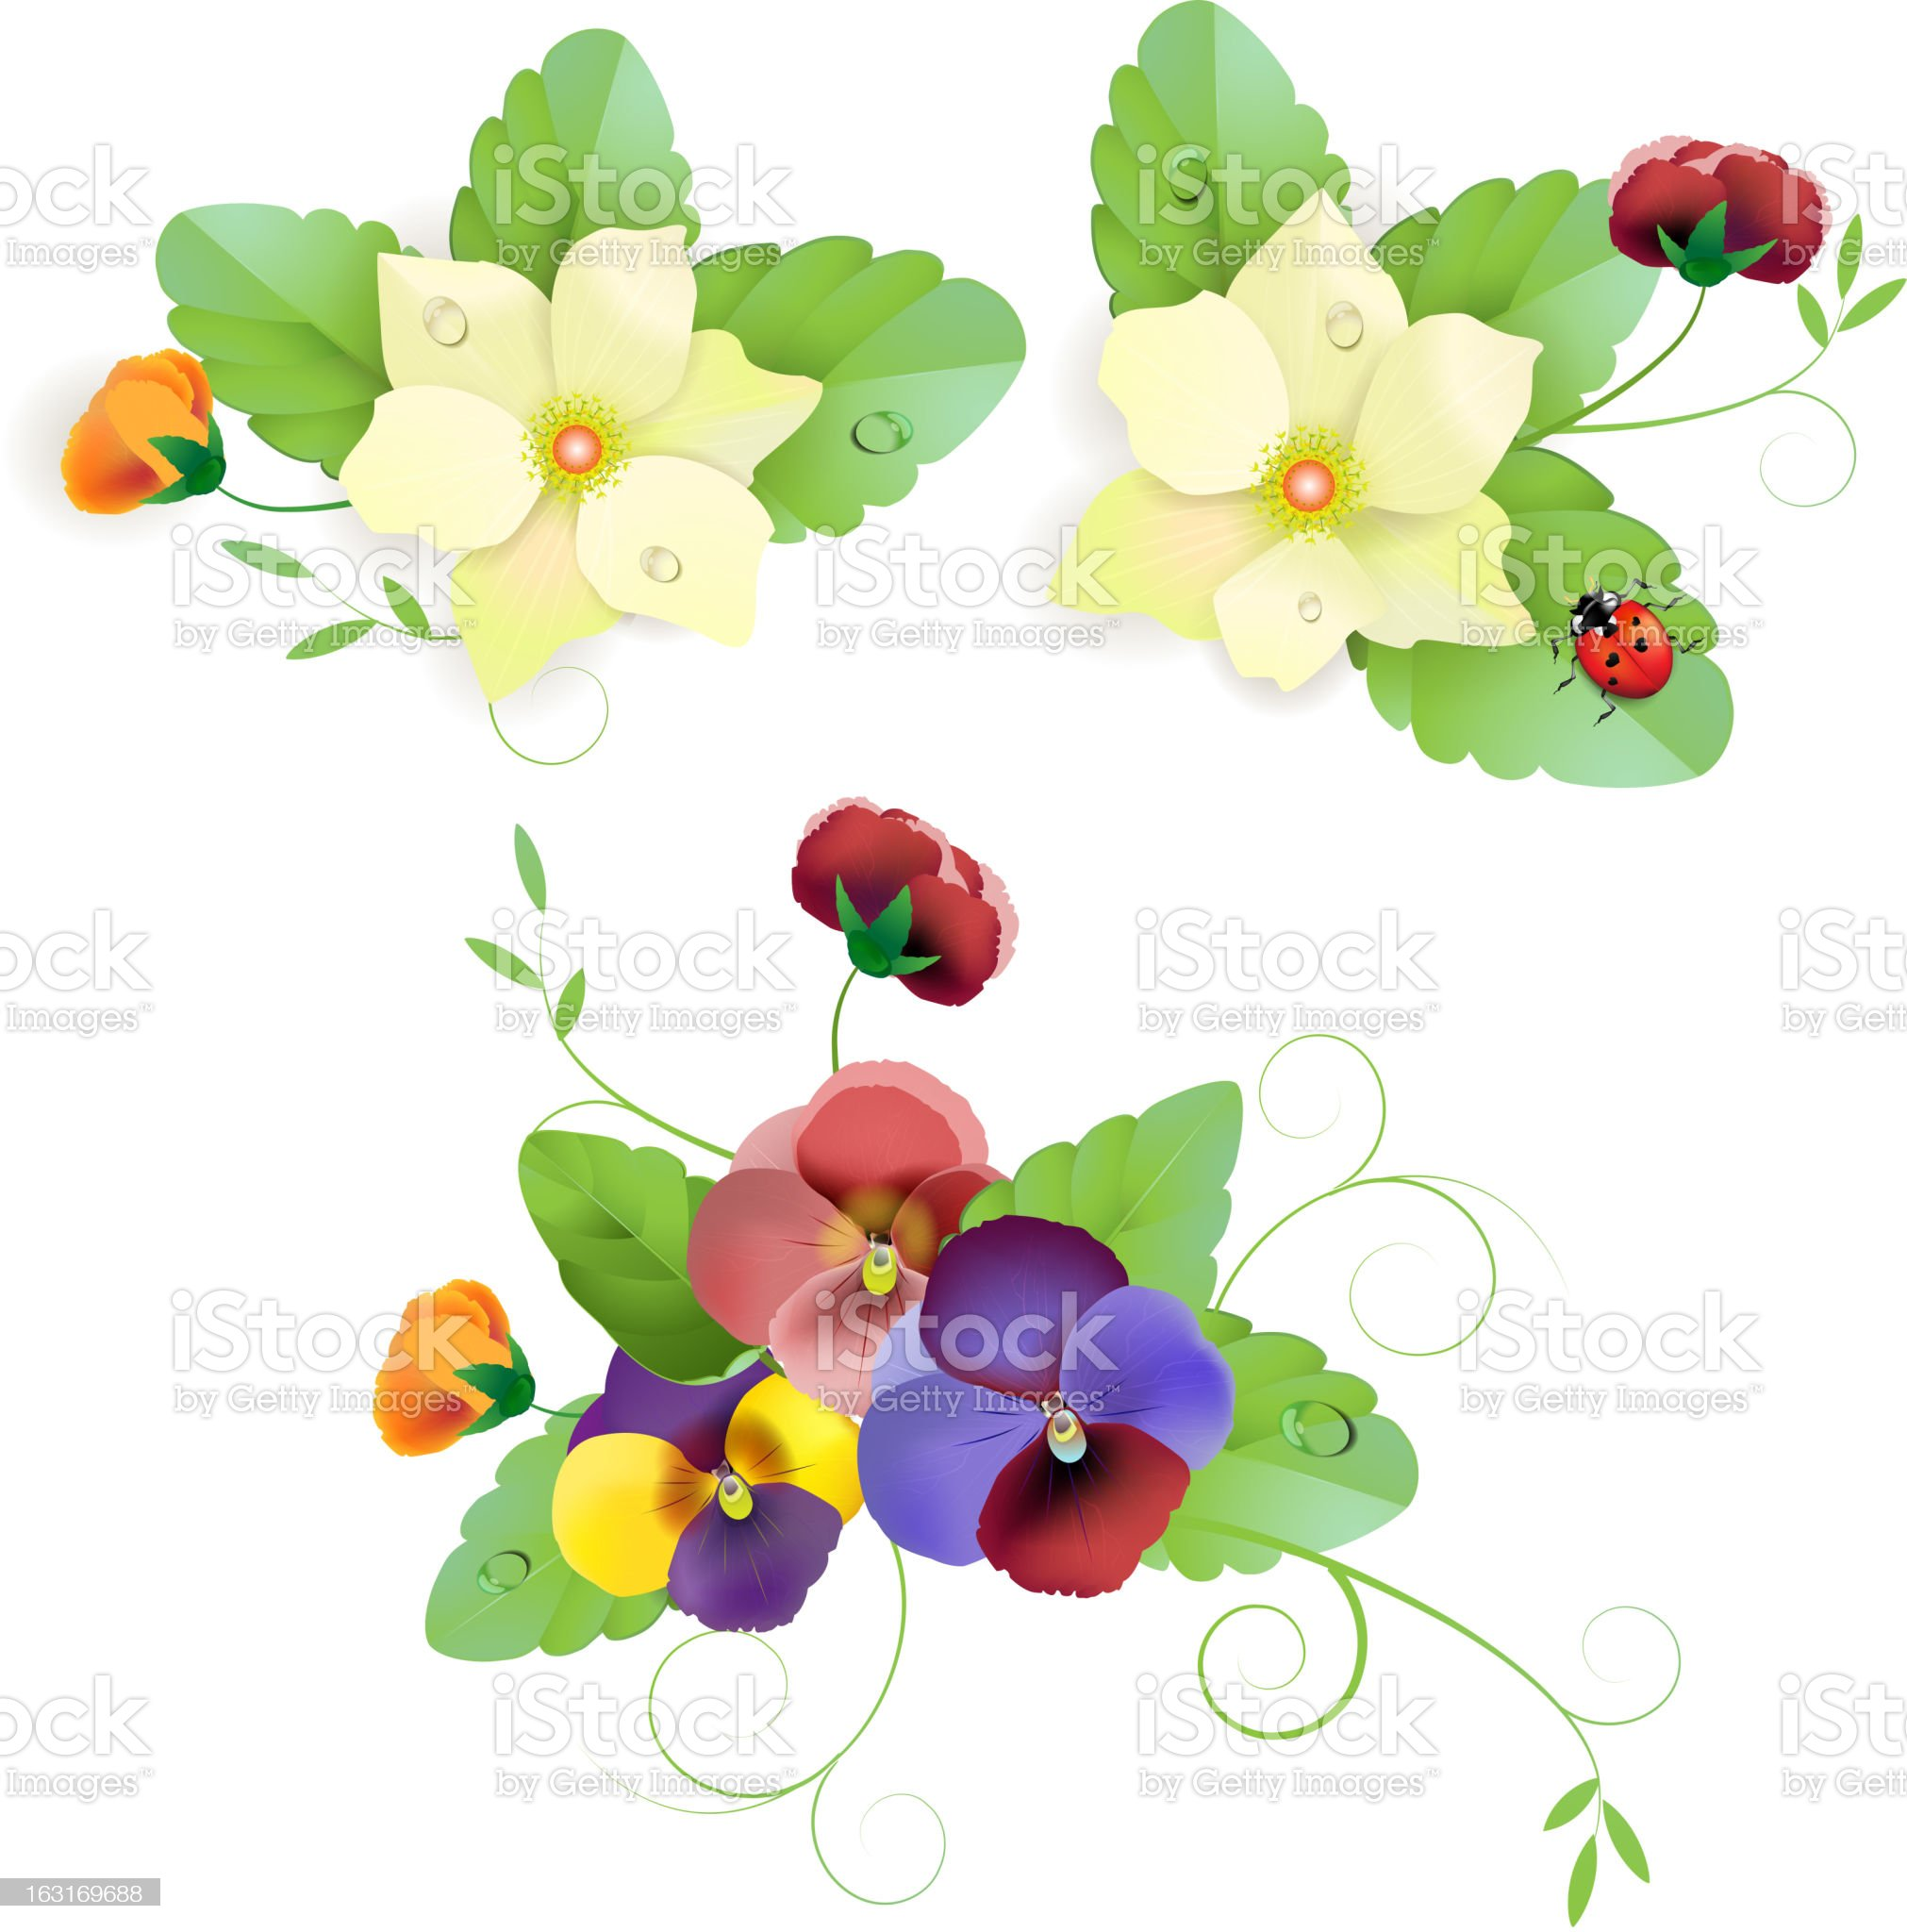 Set of gentle floral royalty-free stock vector art